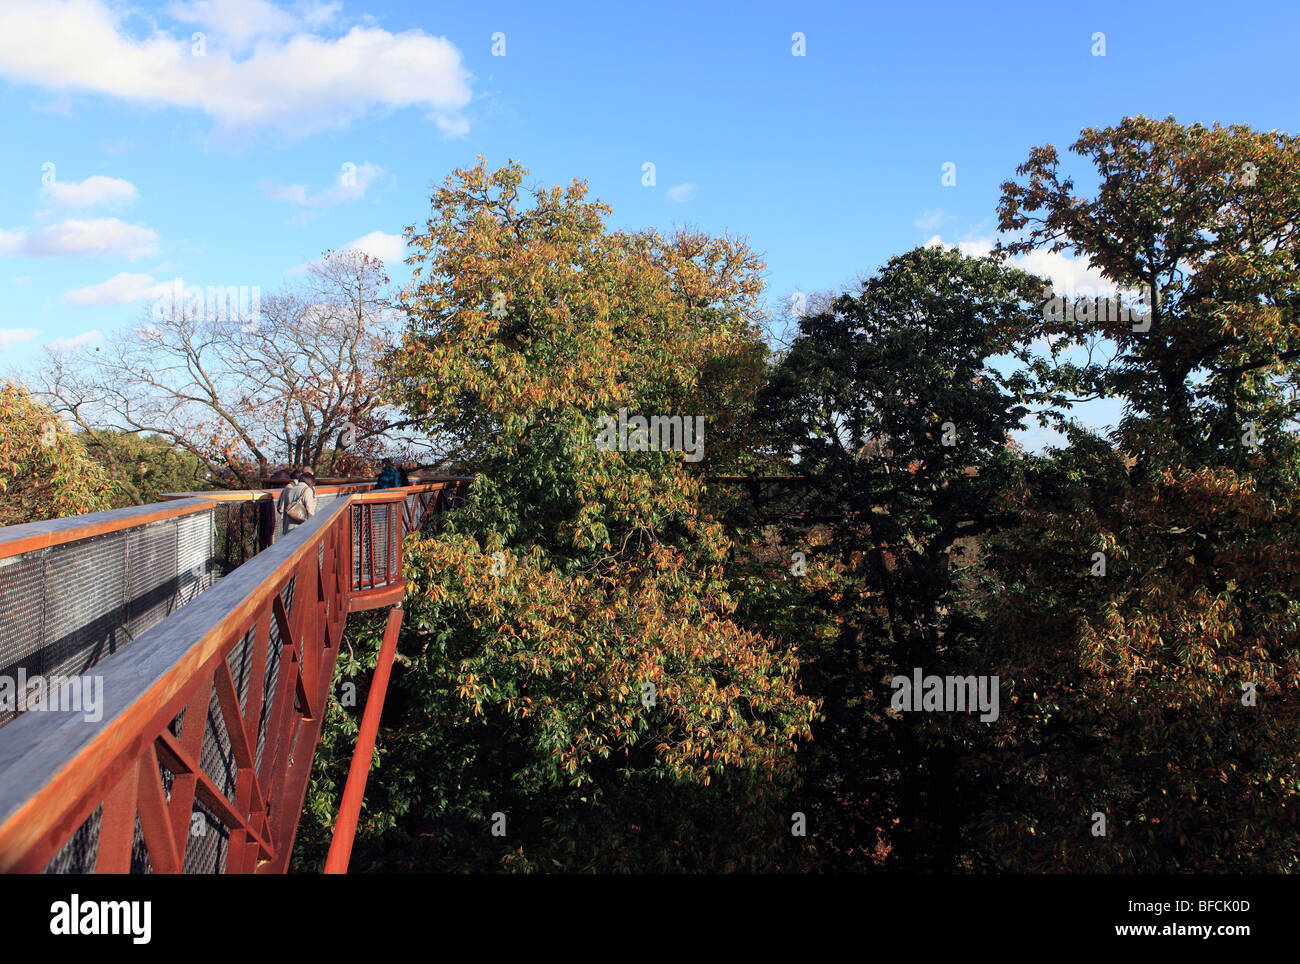 United Kingdom West London Kew gardens le rhizotron et Xstrata treetop walkway Photo Stock